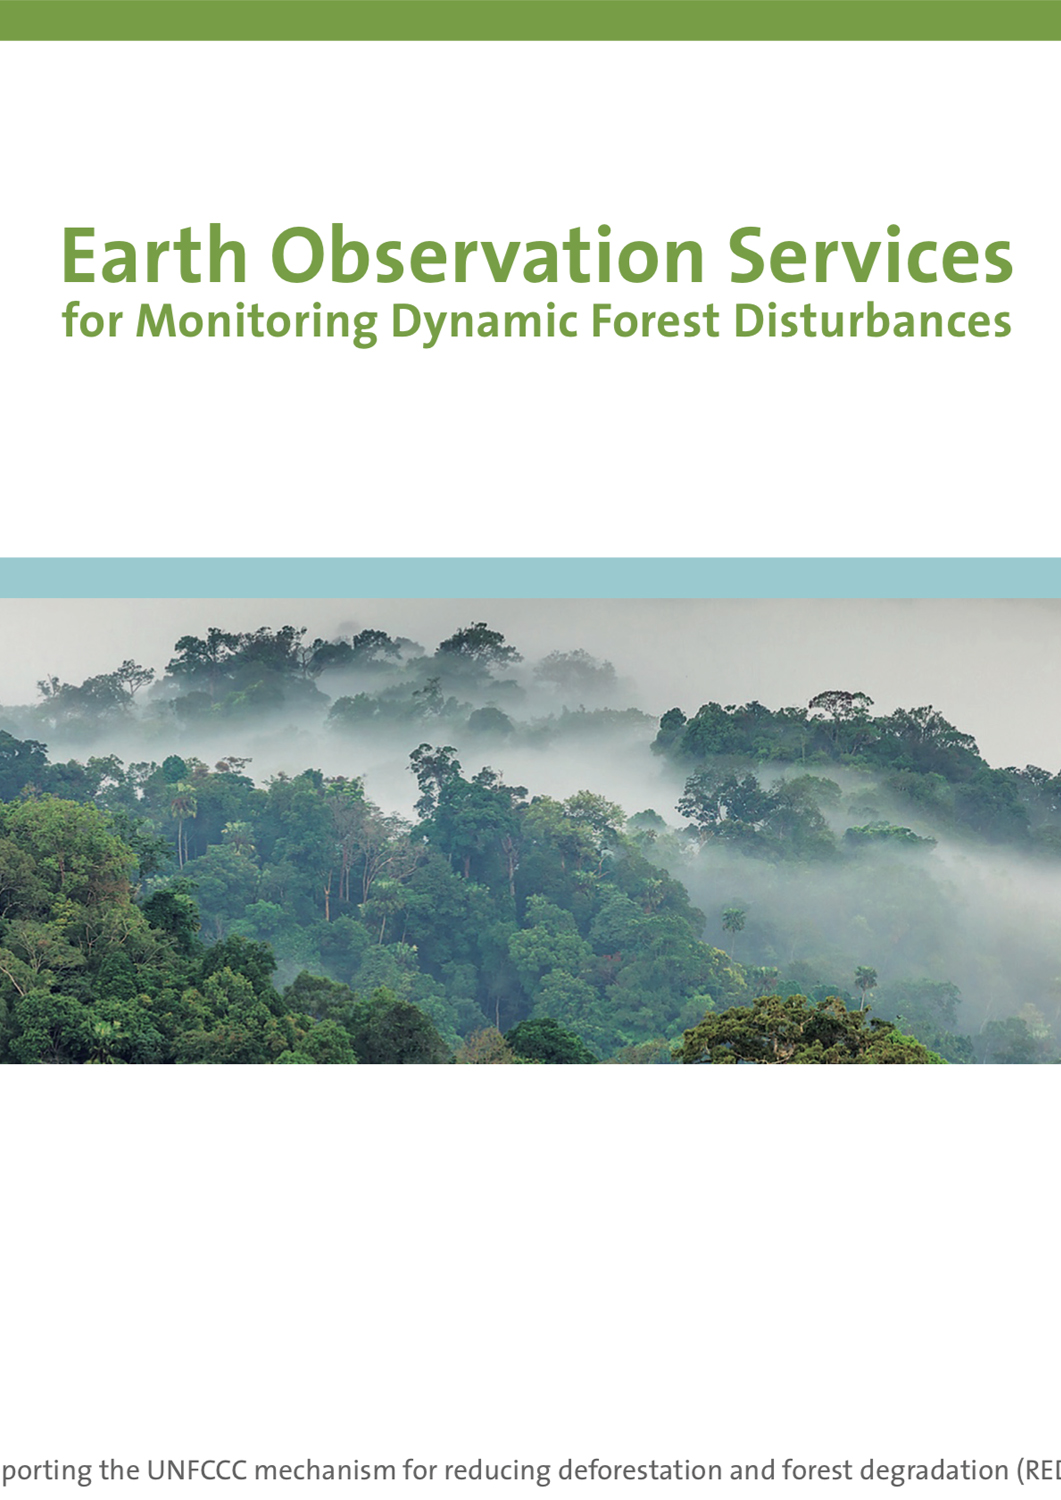 Earth Observation Services for Monitoring Dynamic Forest Disturbances